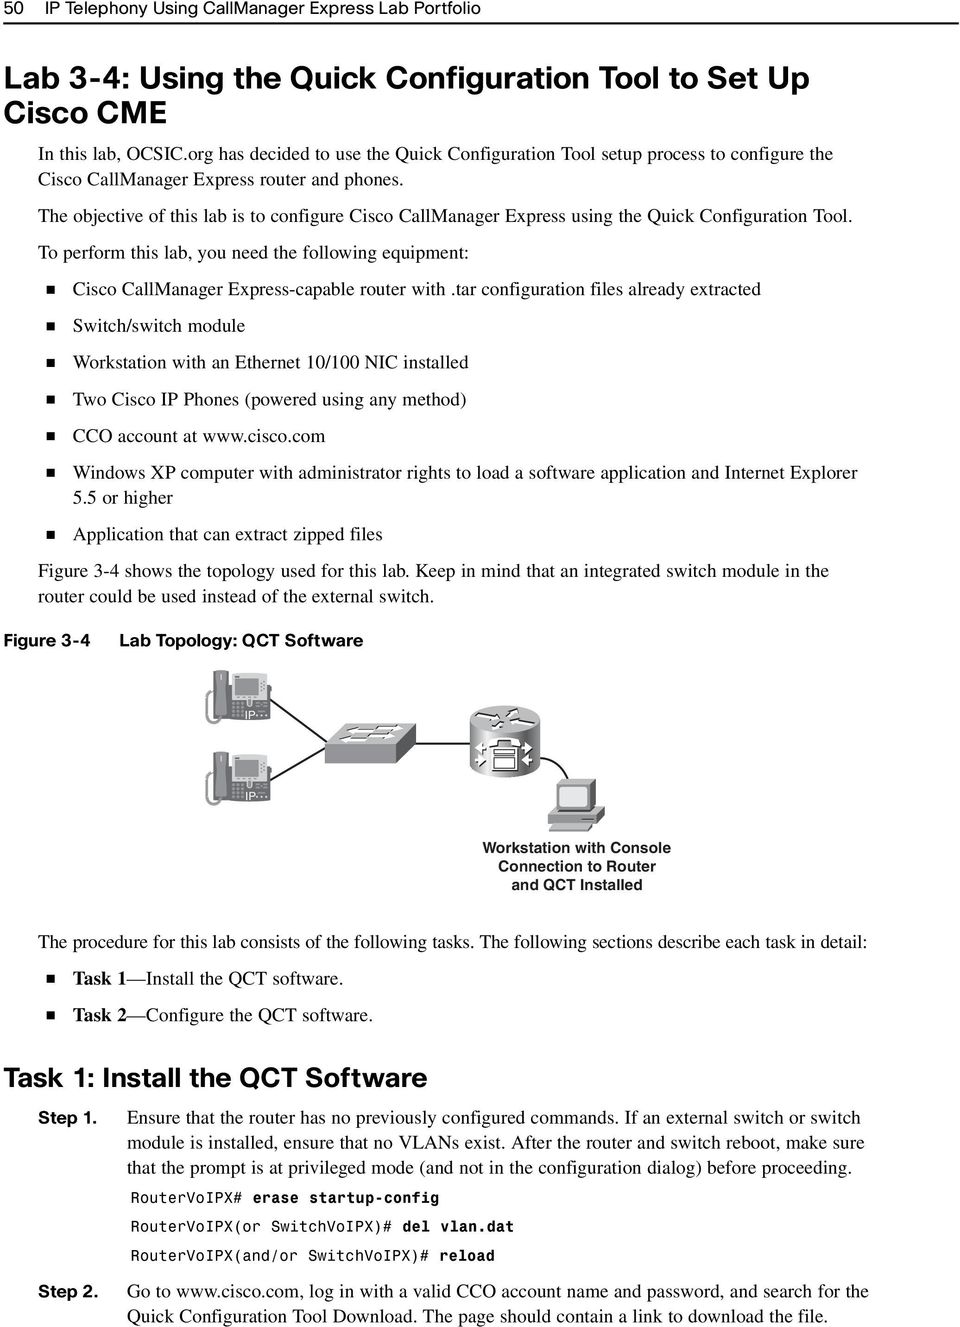 The objective of this lab is to configure Cisco CallManager Express using the Quick Configuration Tool.